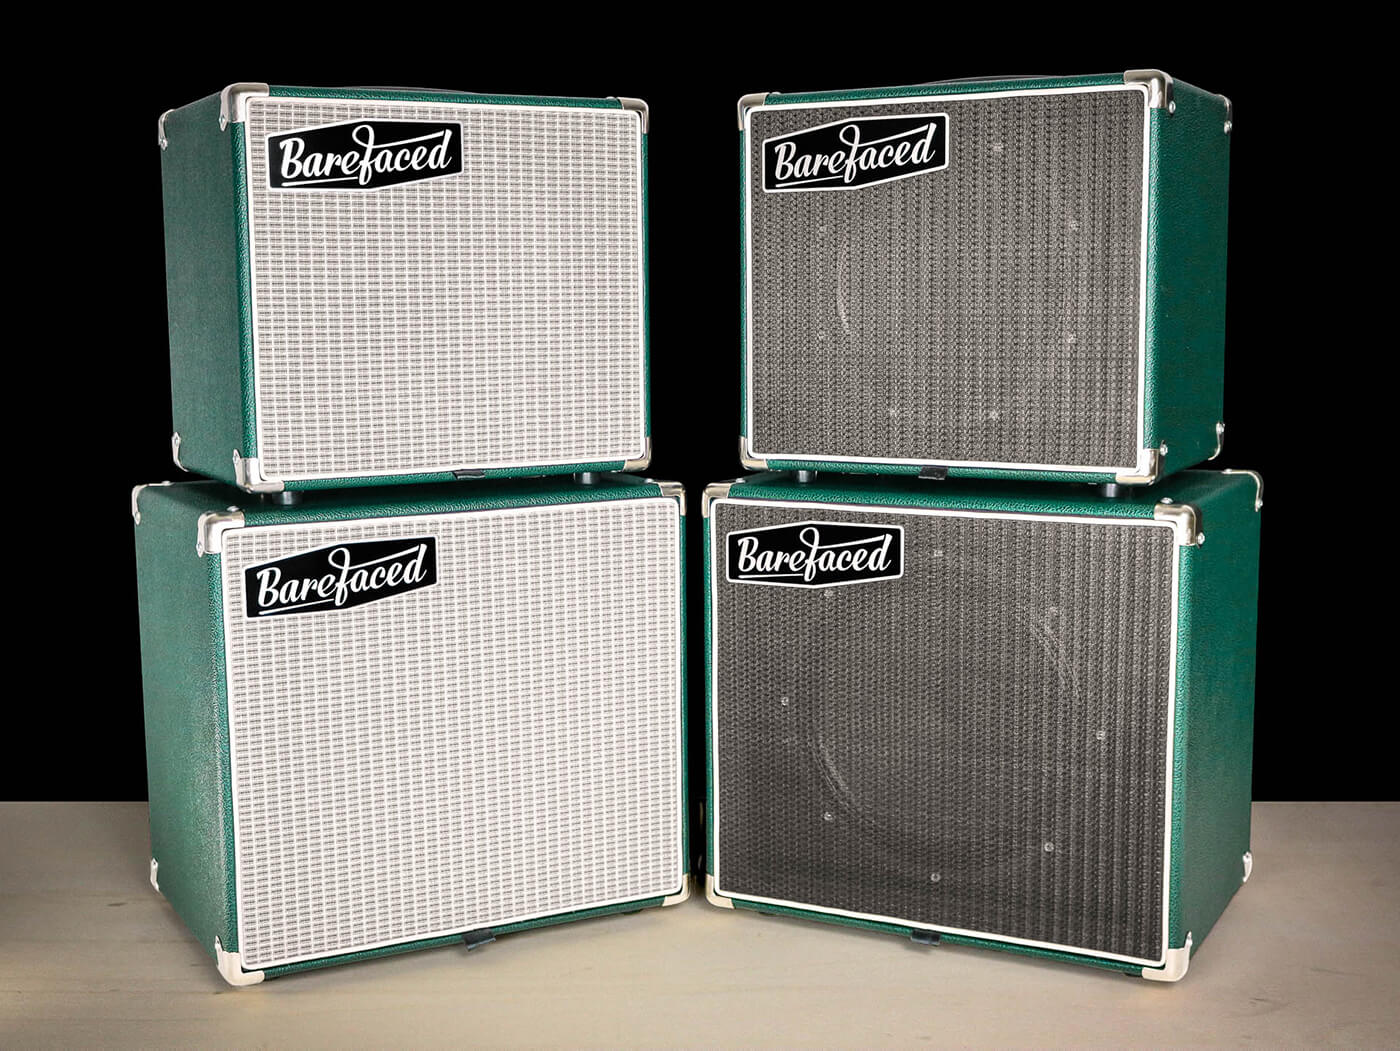 Barefaced introduces GX, GXII guitar cabs